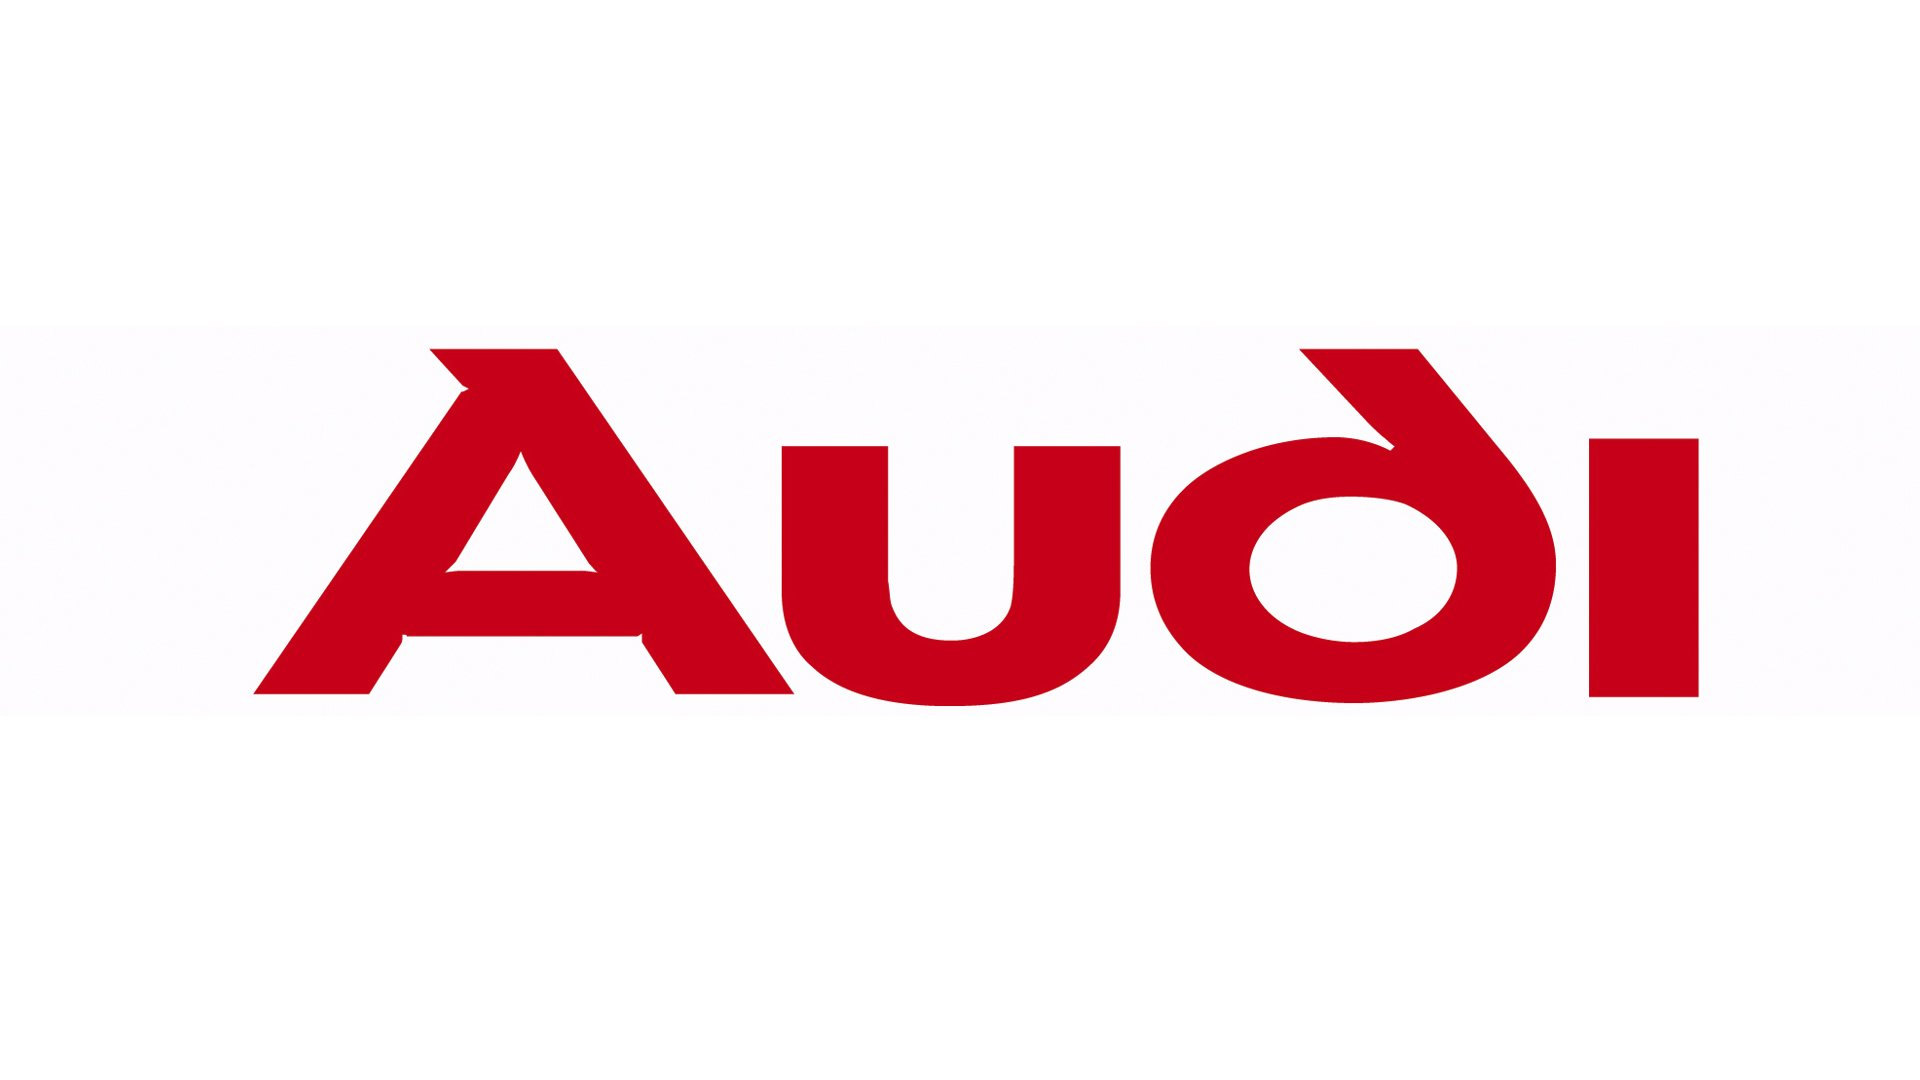 Audi Logo Audi Symbol Meaning History And Evolution - Audi emblem